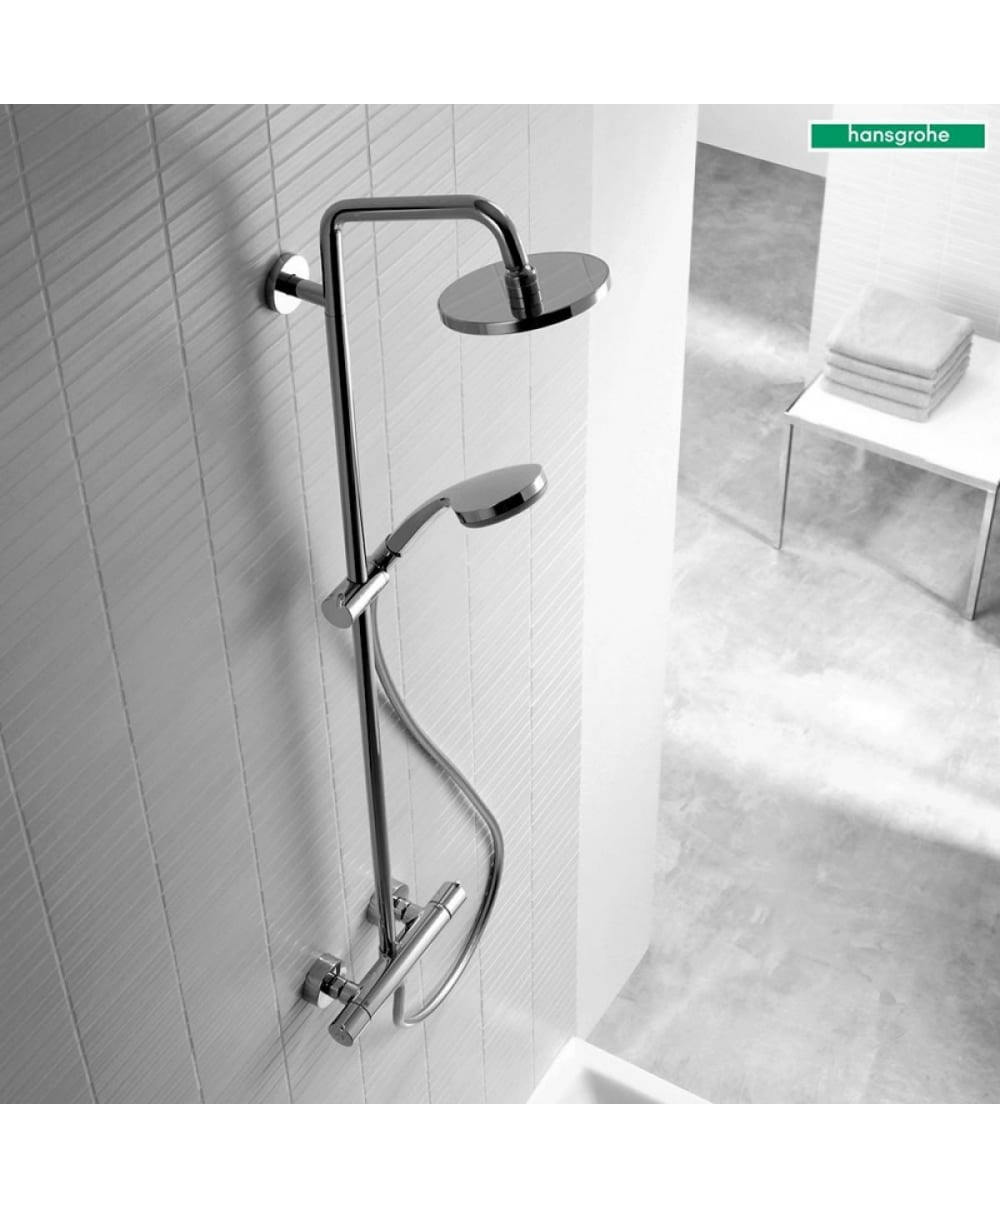 hansgrohe shower system hansgrohe raindance cool hansgrohe atlanta photos hansgrohe. Black Bedroom Furniture Sets. Home Design Ideas